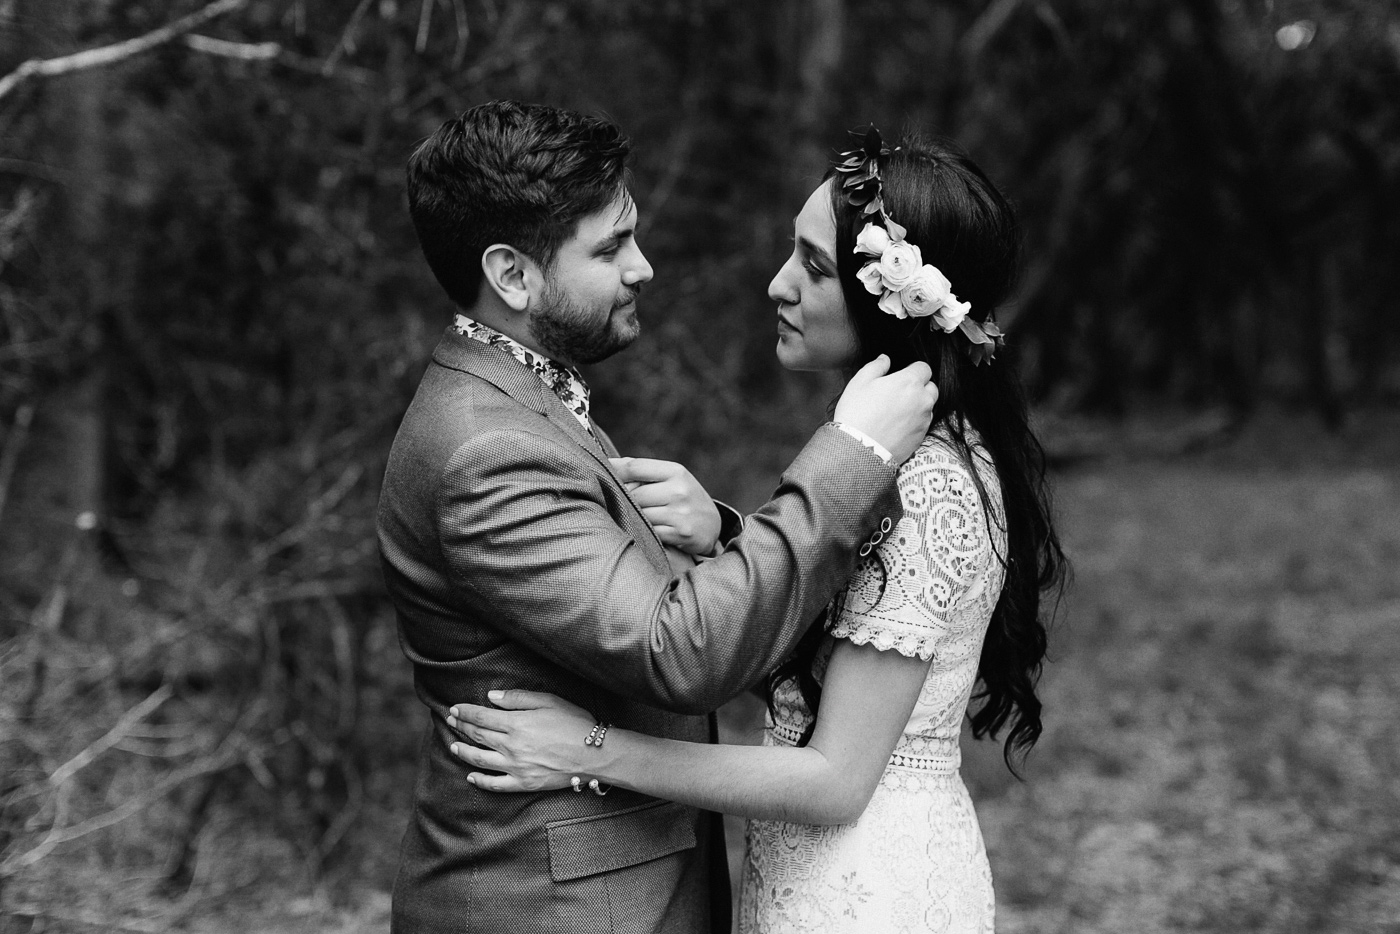 Texas Bride and Groom Portrait Black and White Emotional Moment